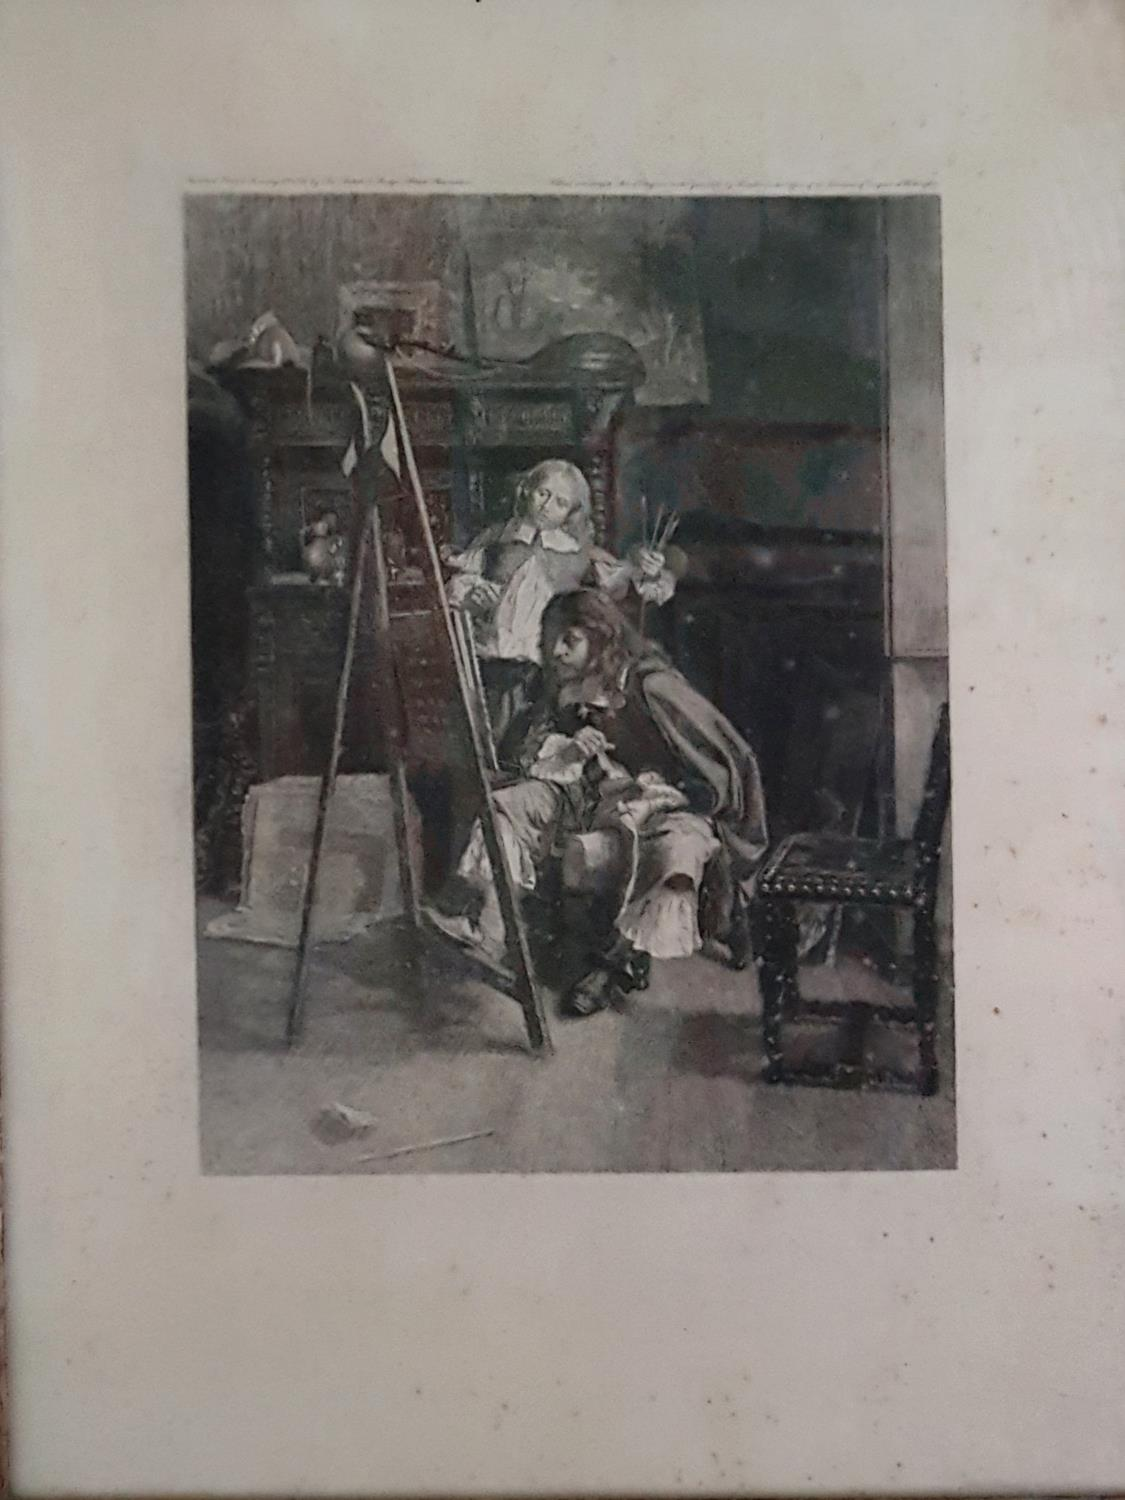 A 19th Century Engraving of a Military Officer by Felix (Ouvary) in original frame. - Image 2 of 3